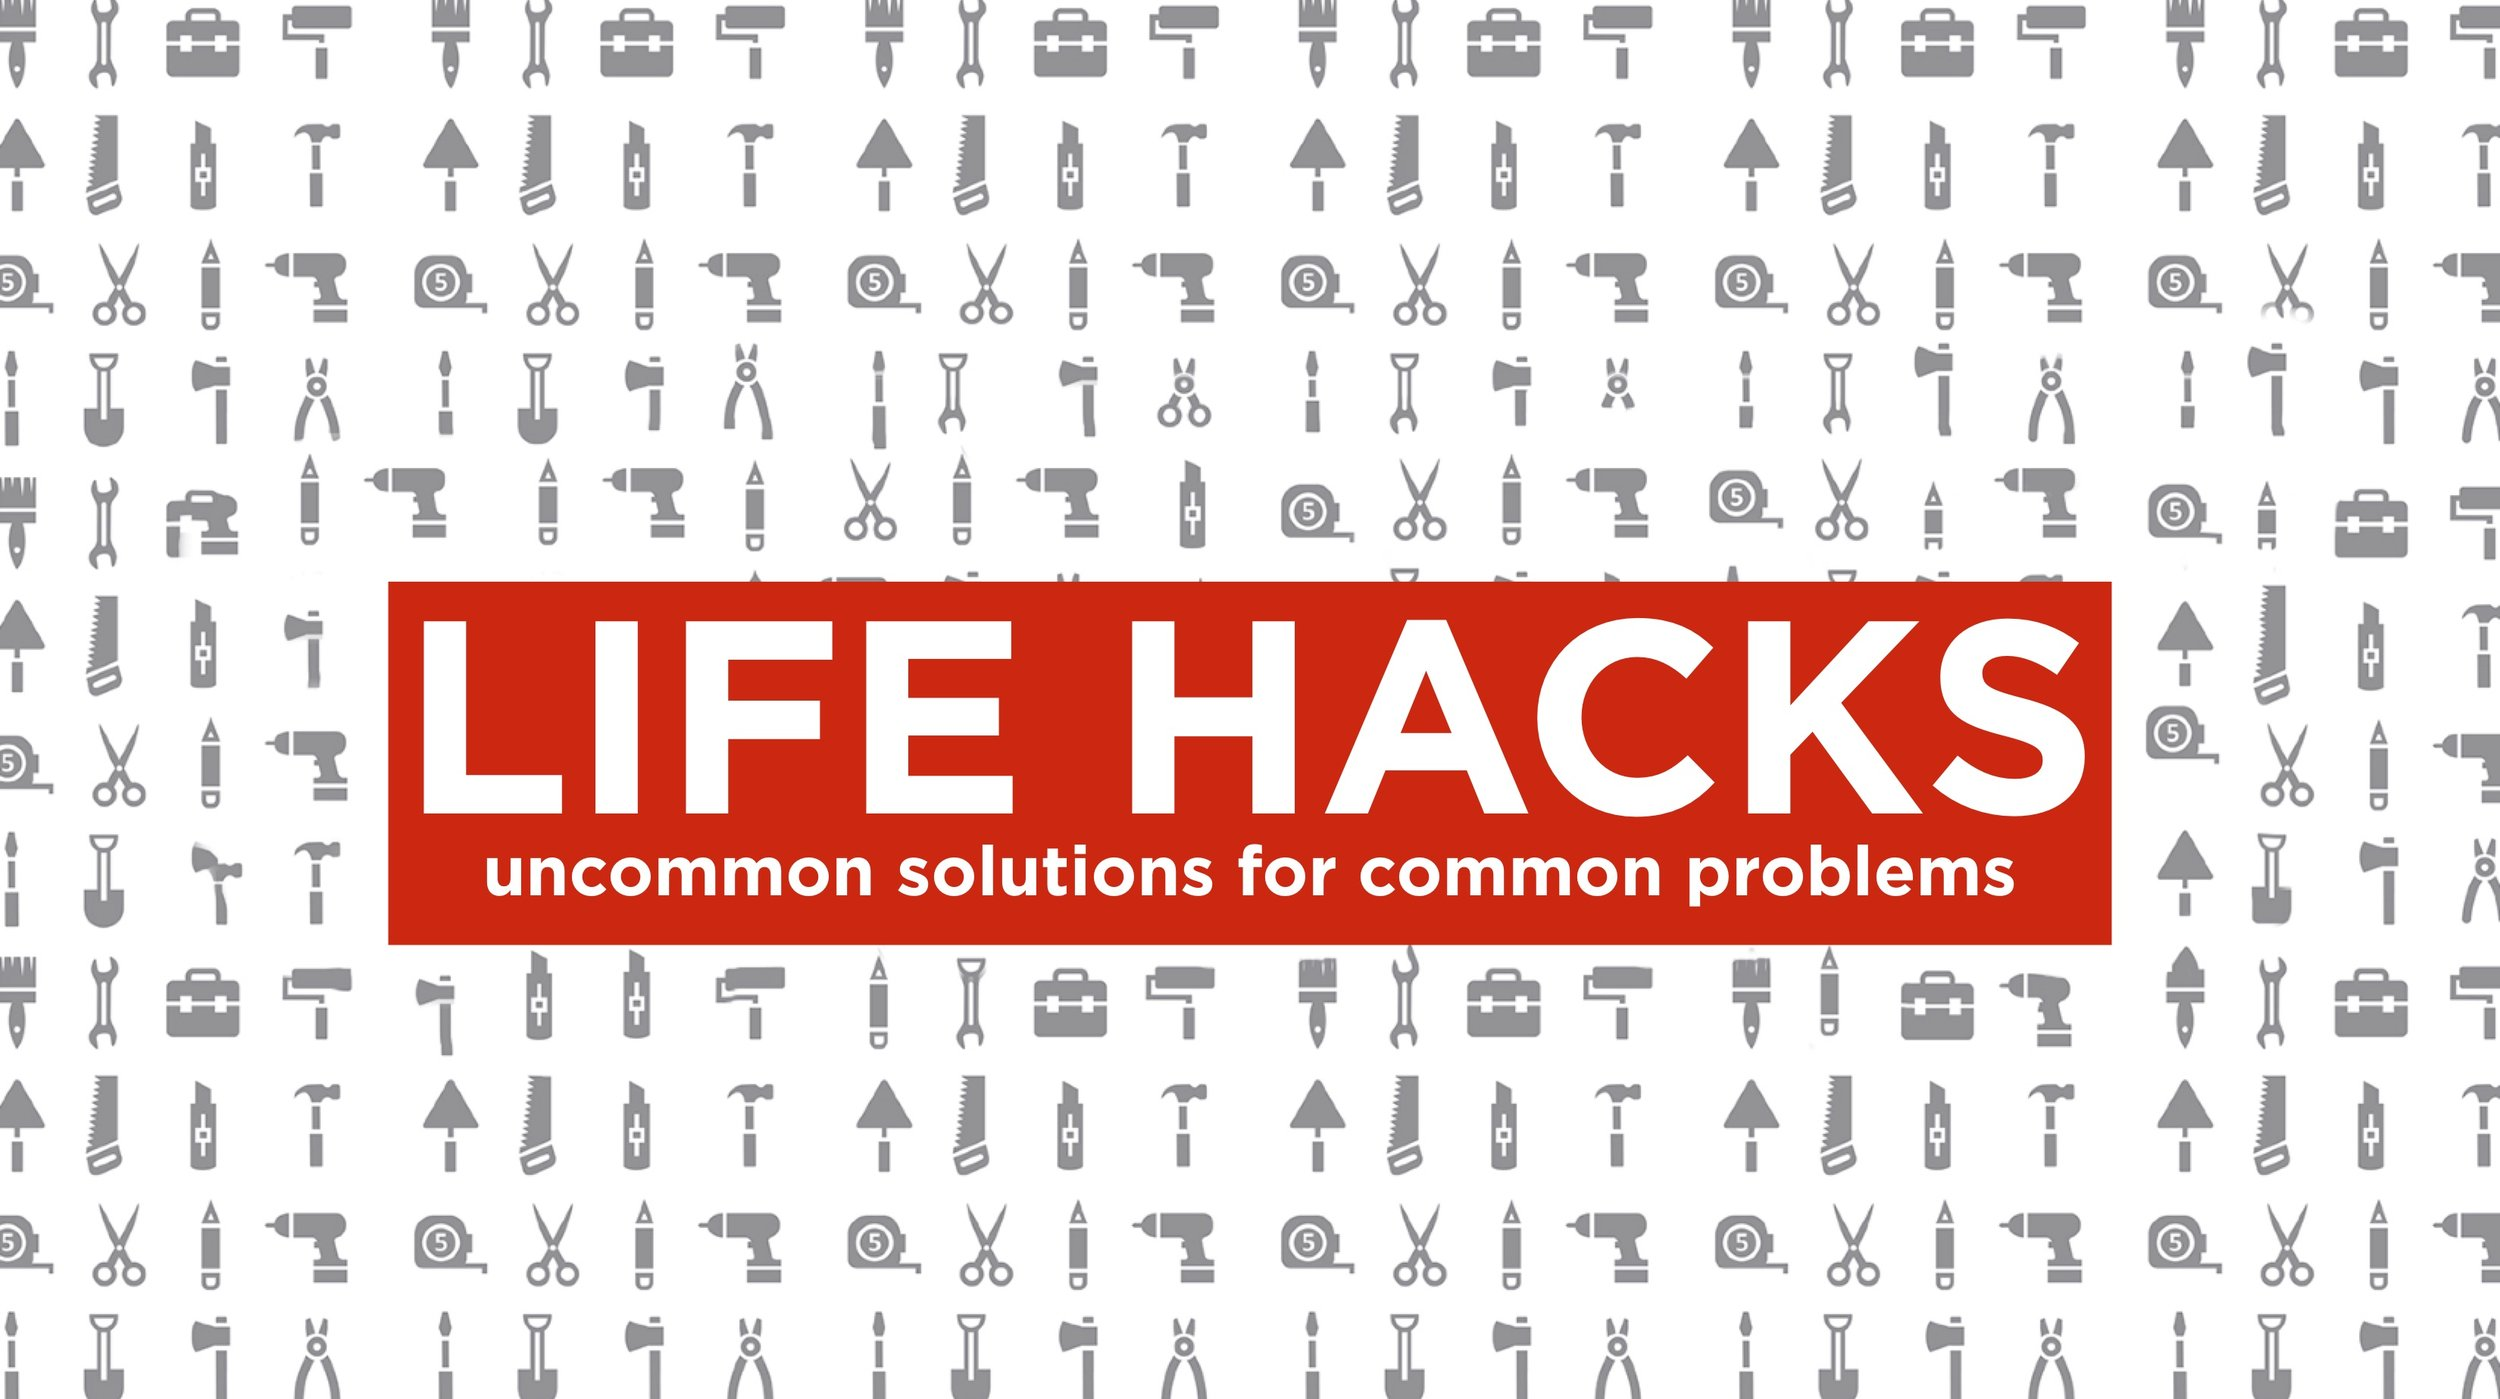 LifeHacks - The Book of Luke contains simple, practical solutions to the problems we all face. In this series we will explore the teachings of Jesus to find those solutions to our common problems.